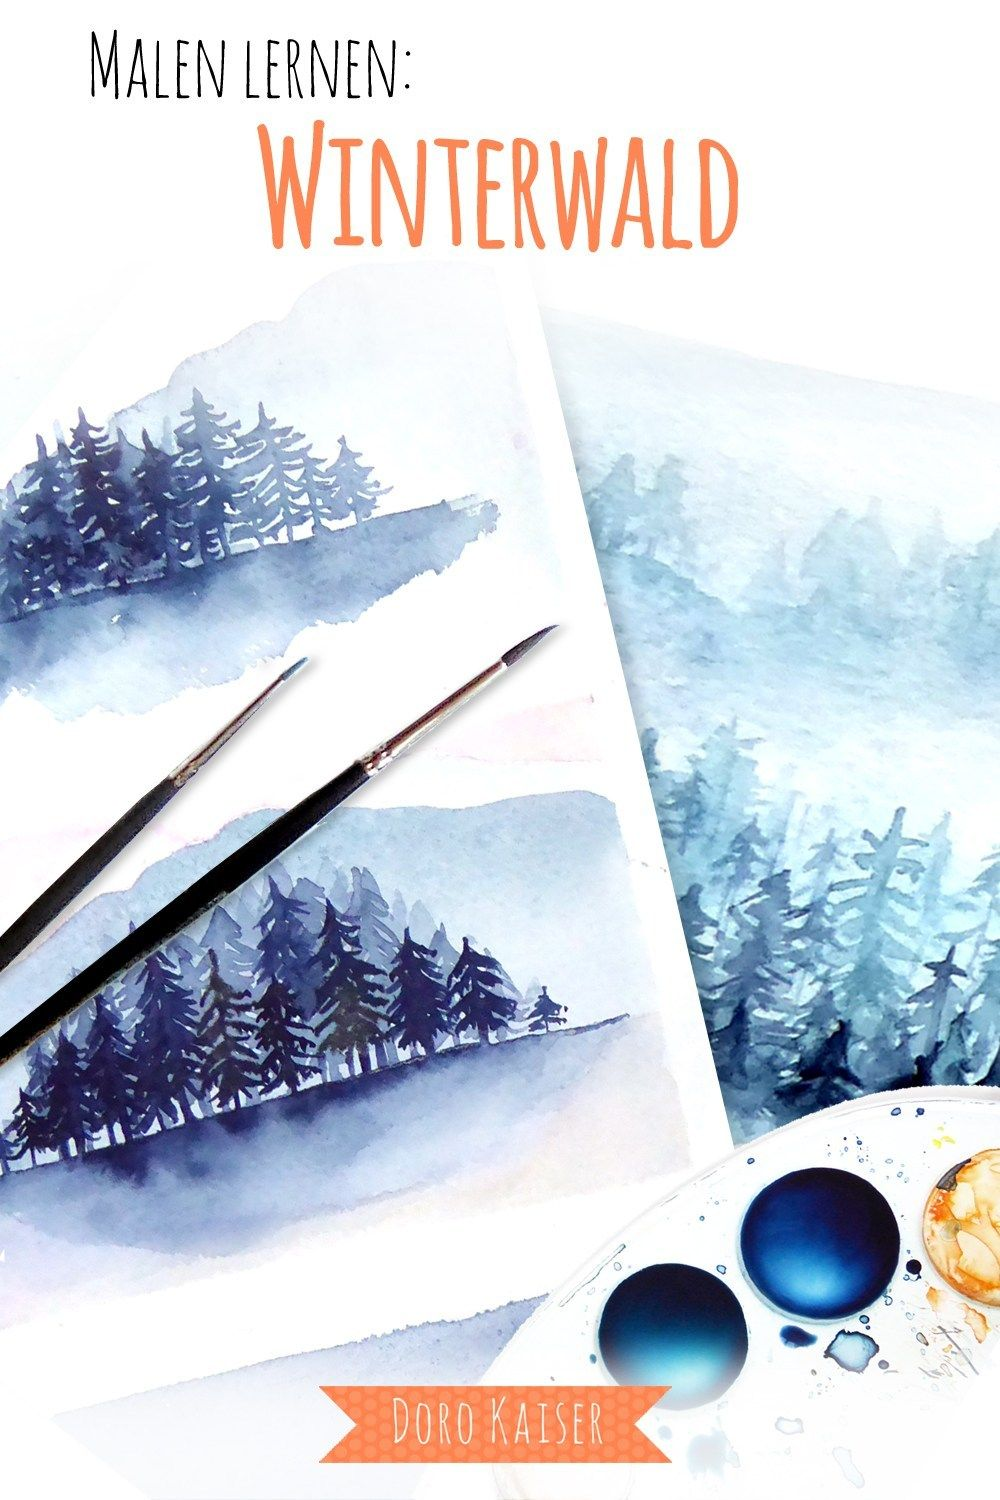 Malen Lernen Mit Aquarell Winterwald Watercolor Paintings